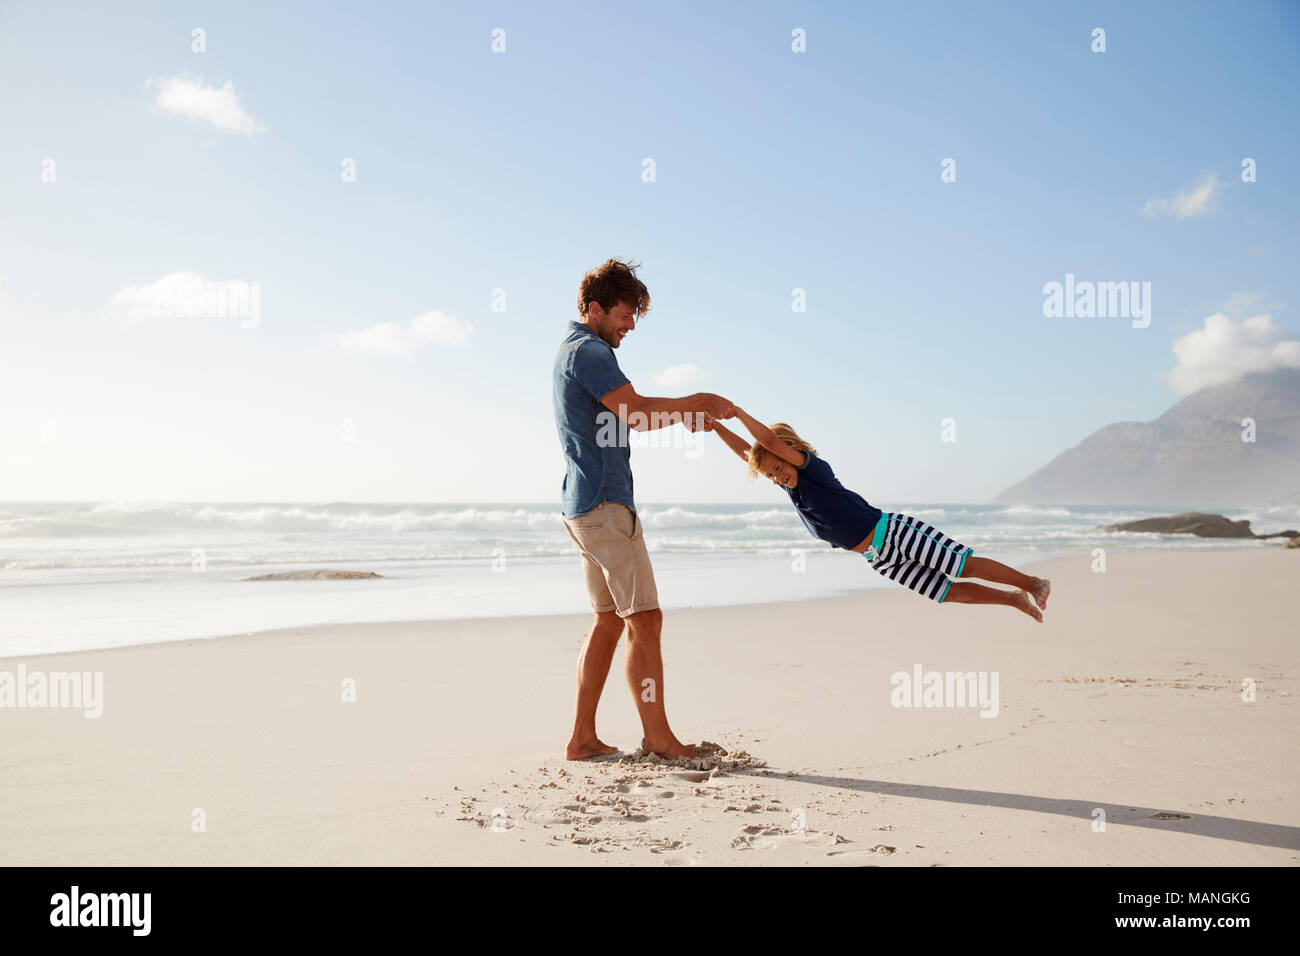 Father Having Fun With Son On Summer Beach Vacation - Stock Image